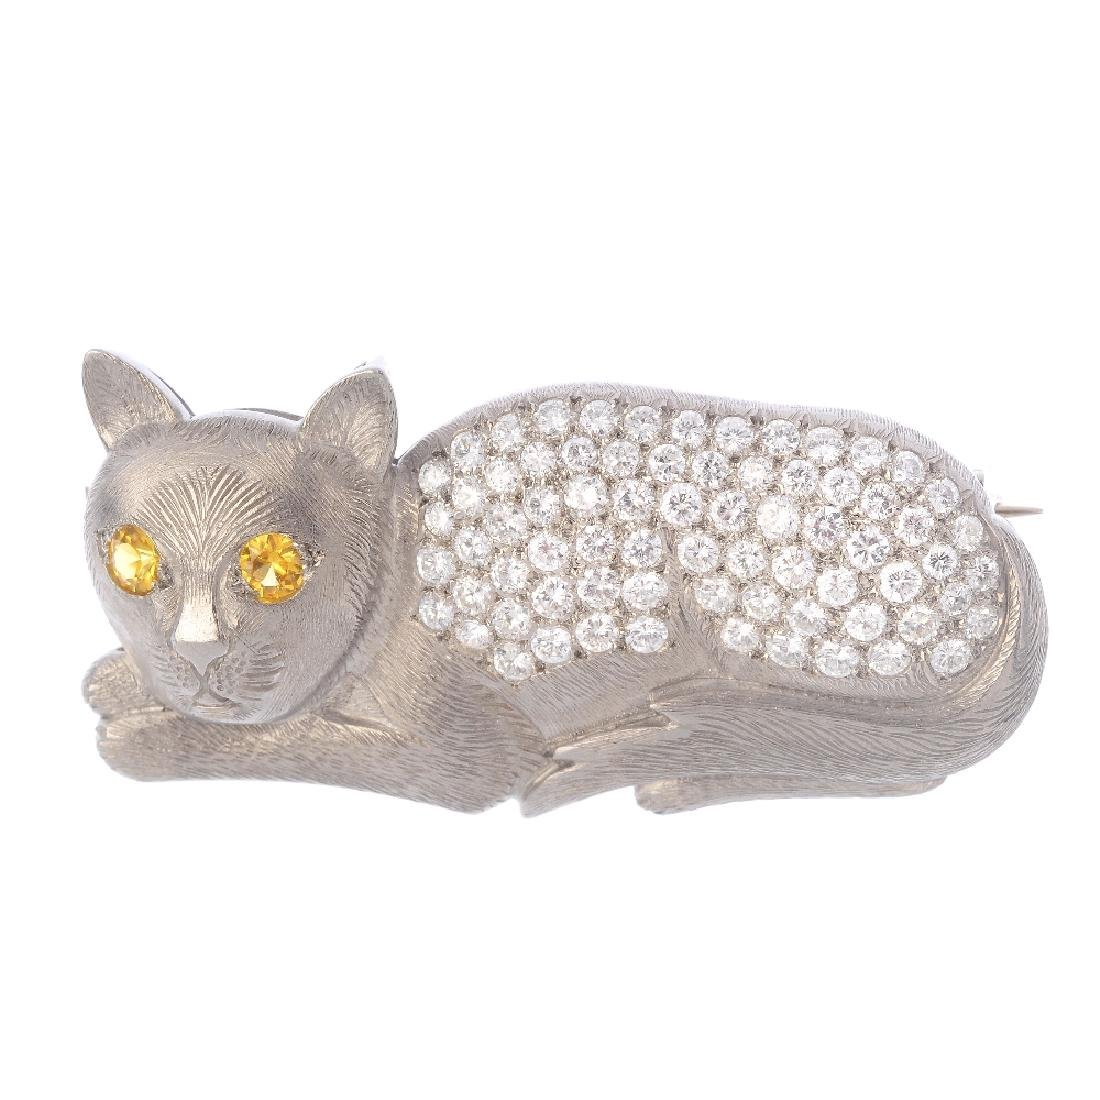 A sapphire and diamond novelty brooch. Designed as a